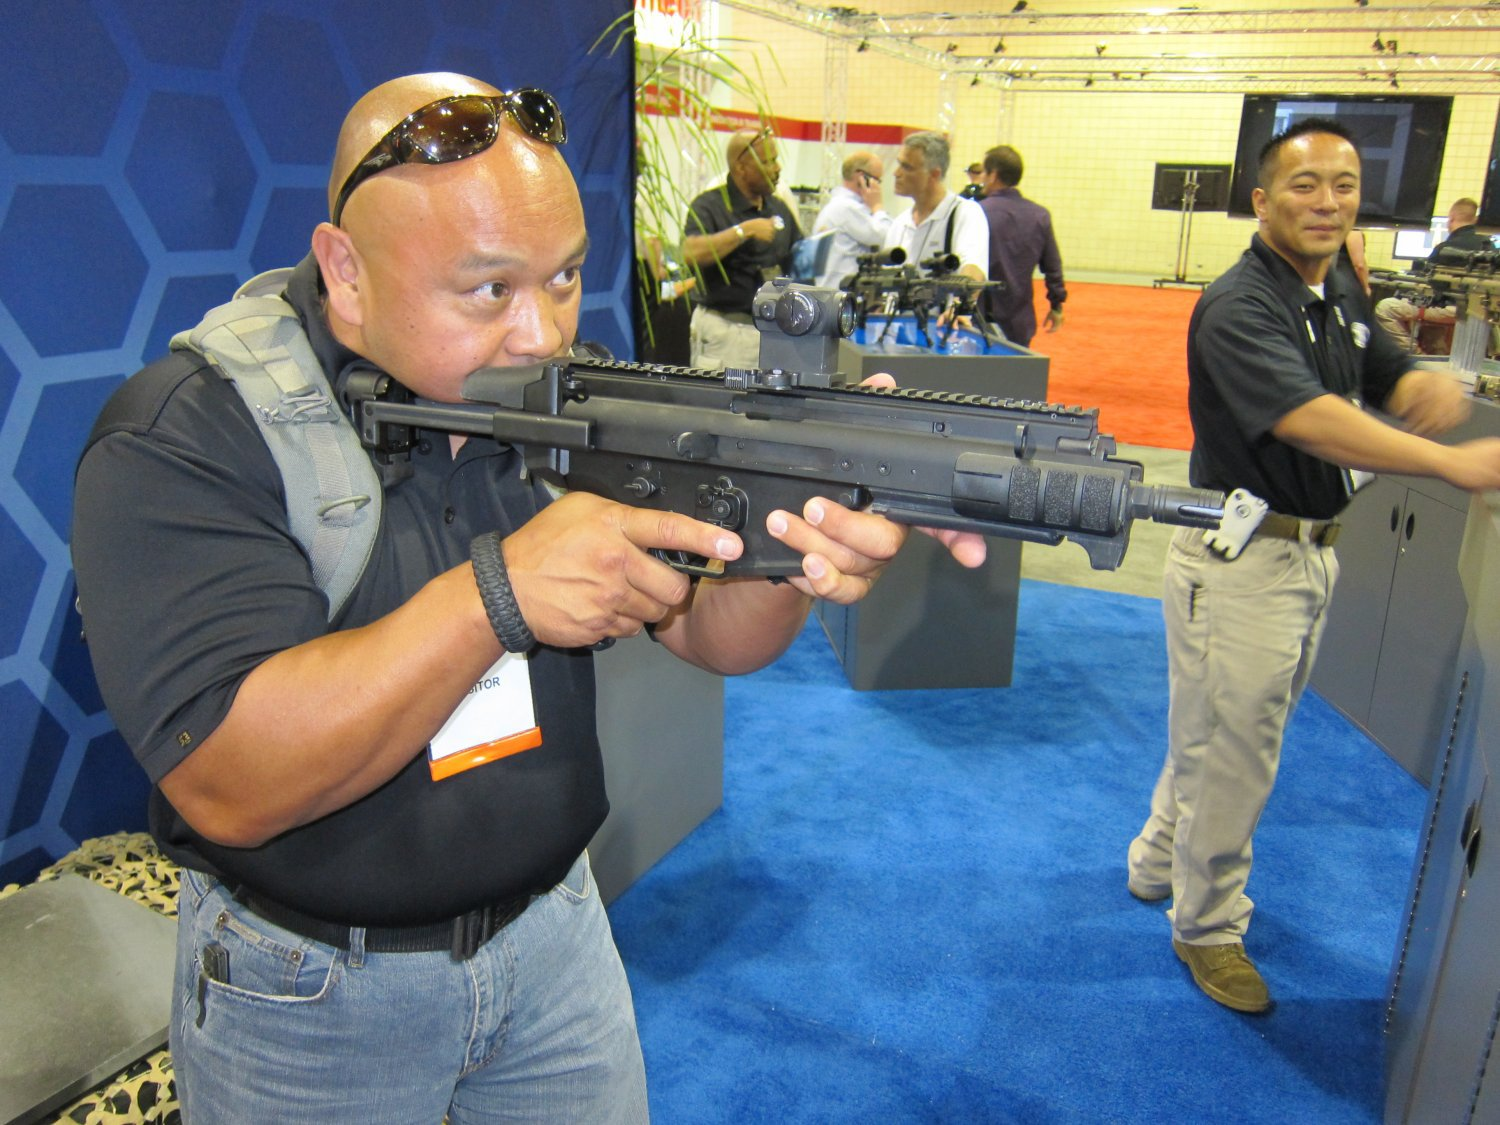 <!--:en-->FN SCAR PDW (Personal Defense Weapon) Compact Select-Fire 5.56mm NATO SBR for Special Operations Forces (SOF) Applications: DR Handles the Weapon at SOFIC 2011 and NDIA Small Arms Symposium 2011 (Photos!)<!--:-->